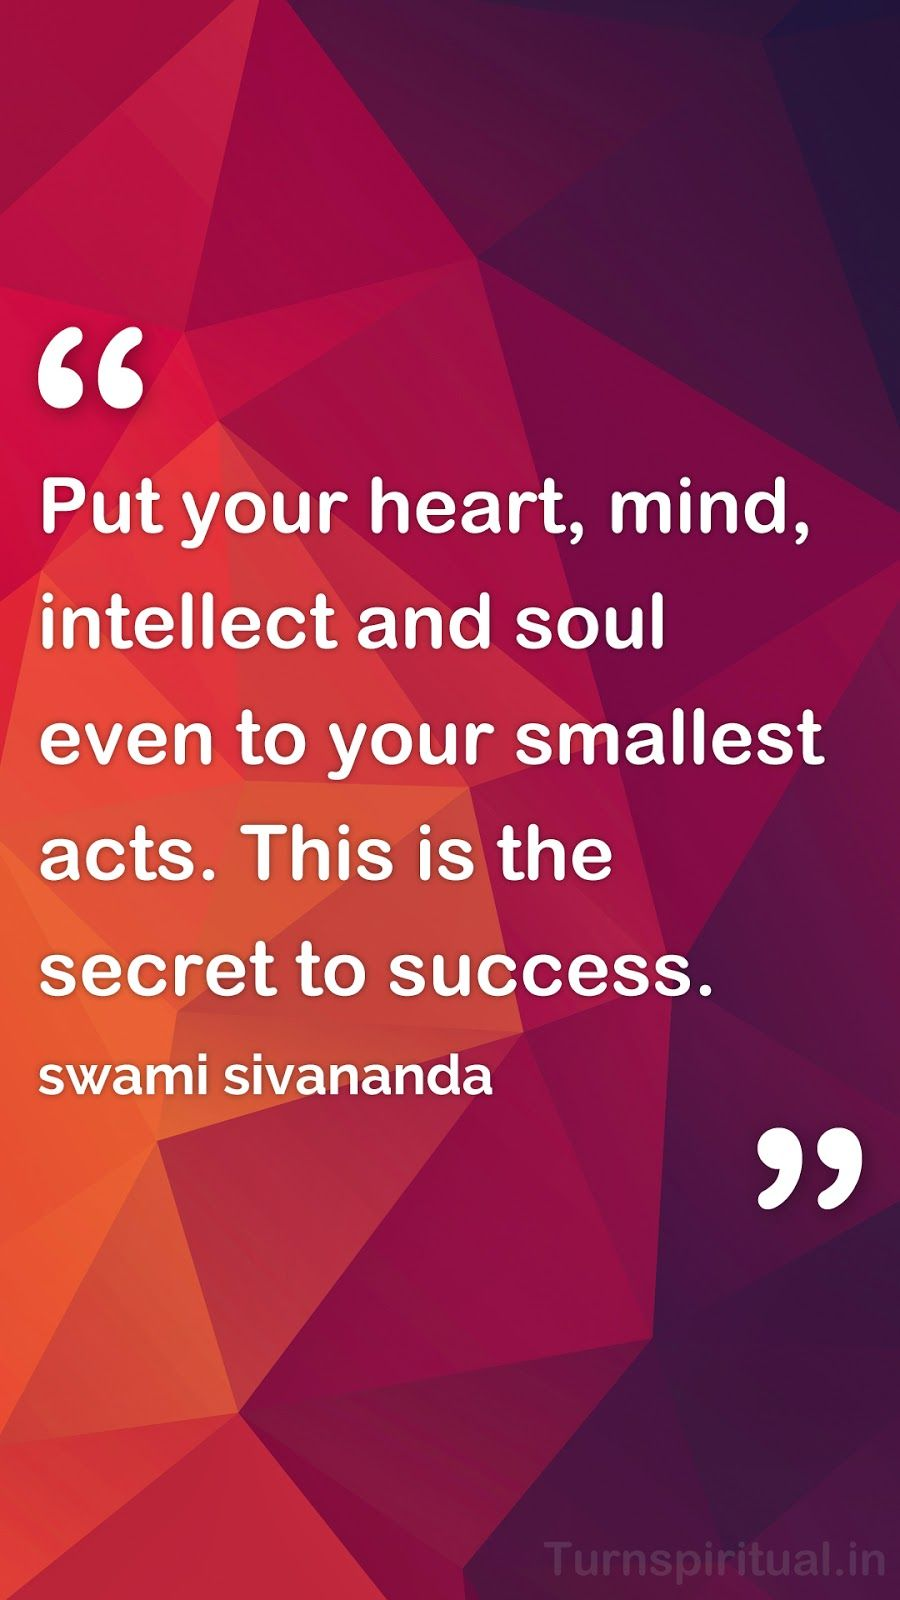 6 Lowpoly HD Mobile Wallpapers Of Swami Sivananda Quotes